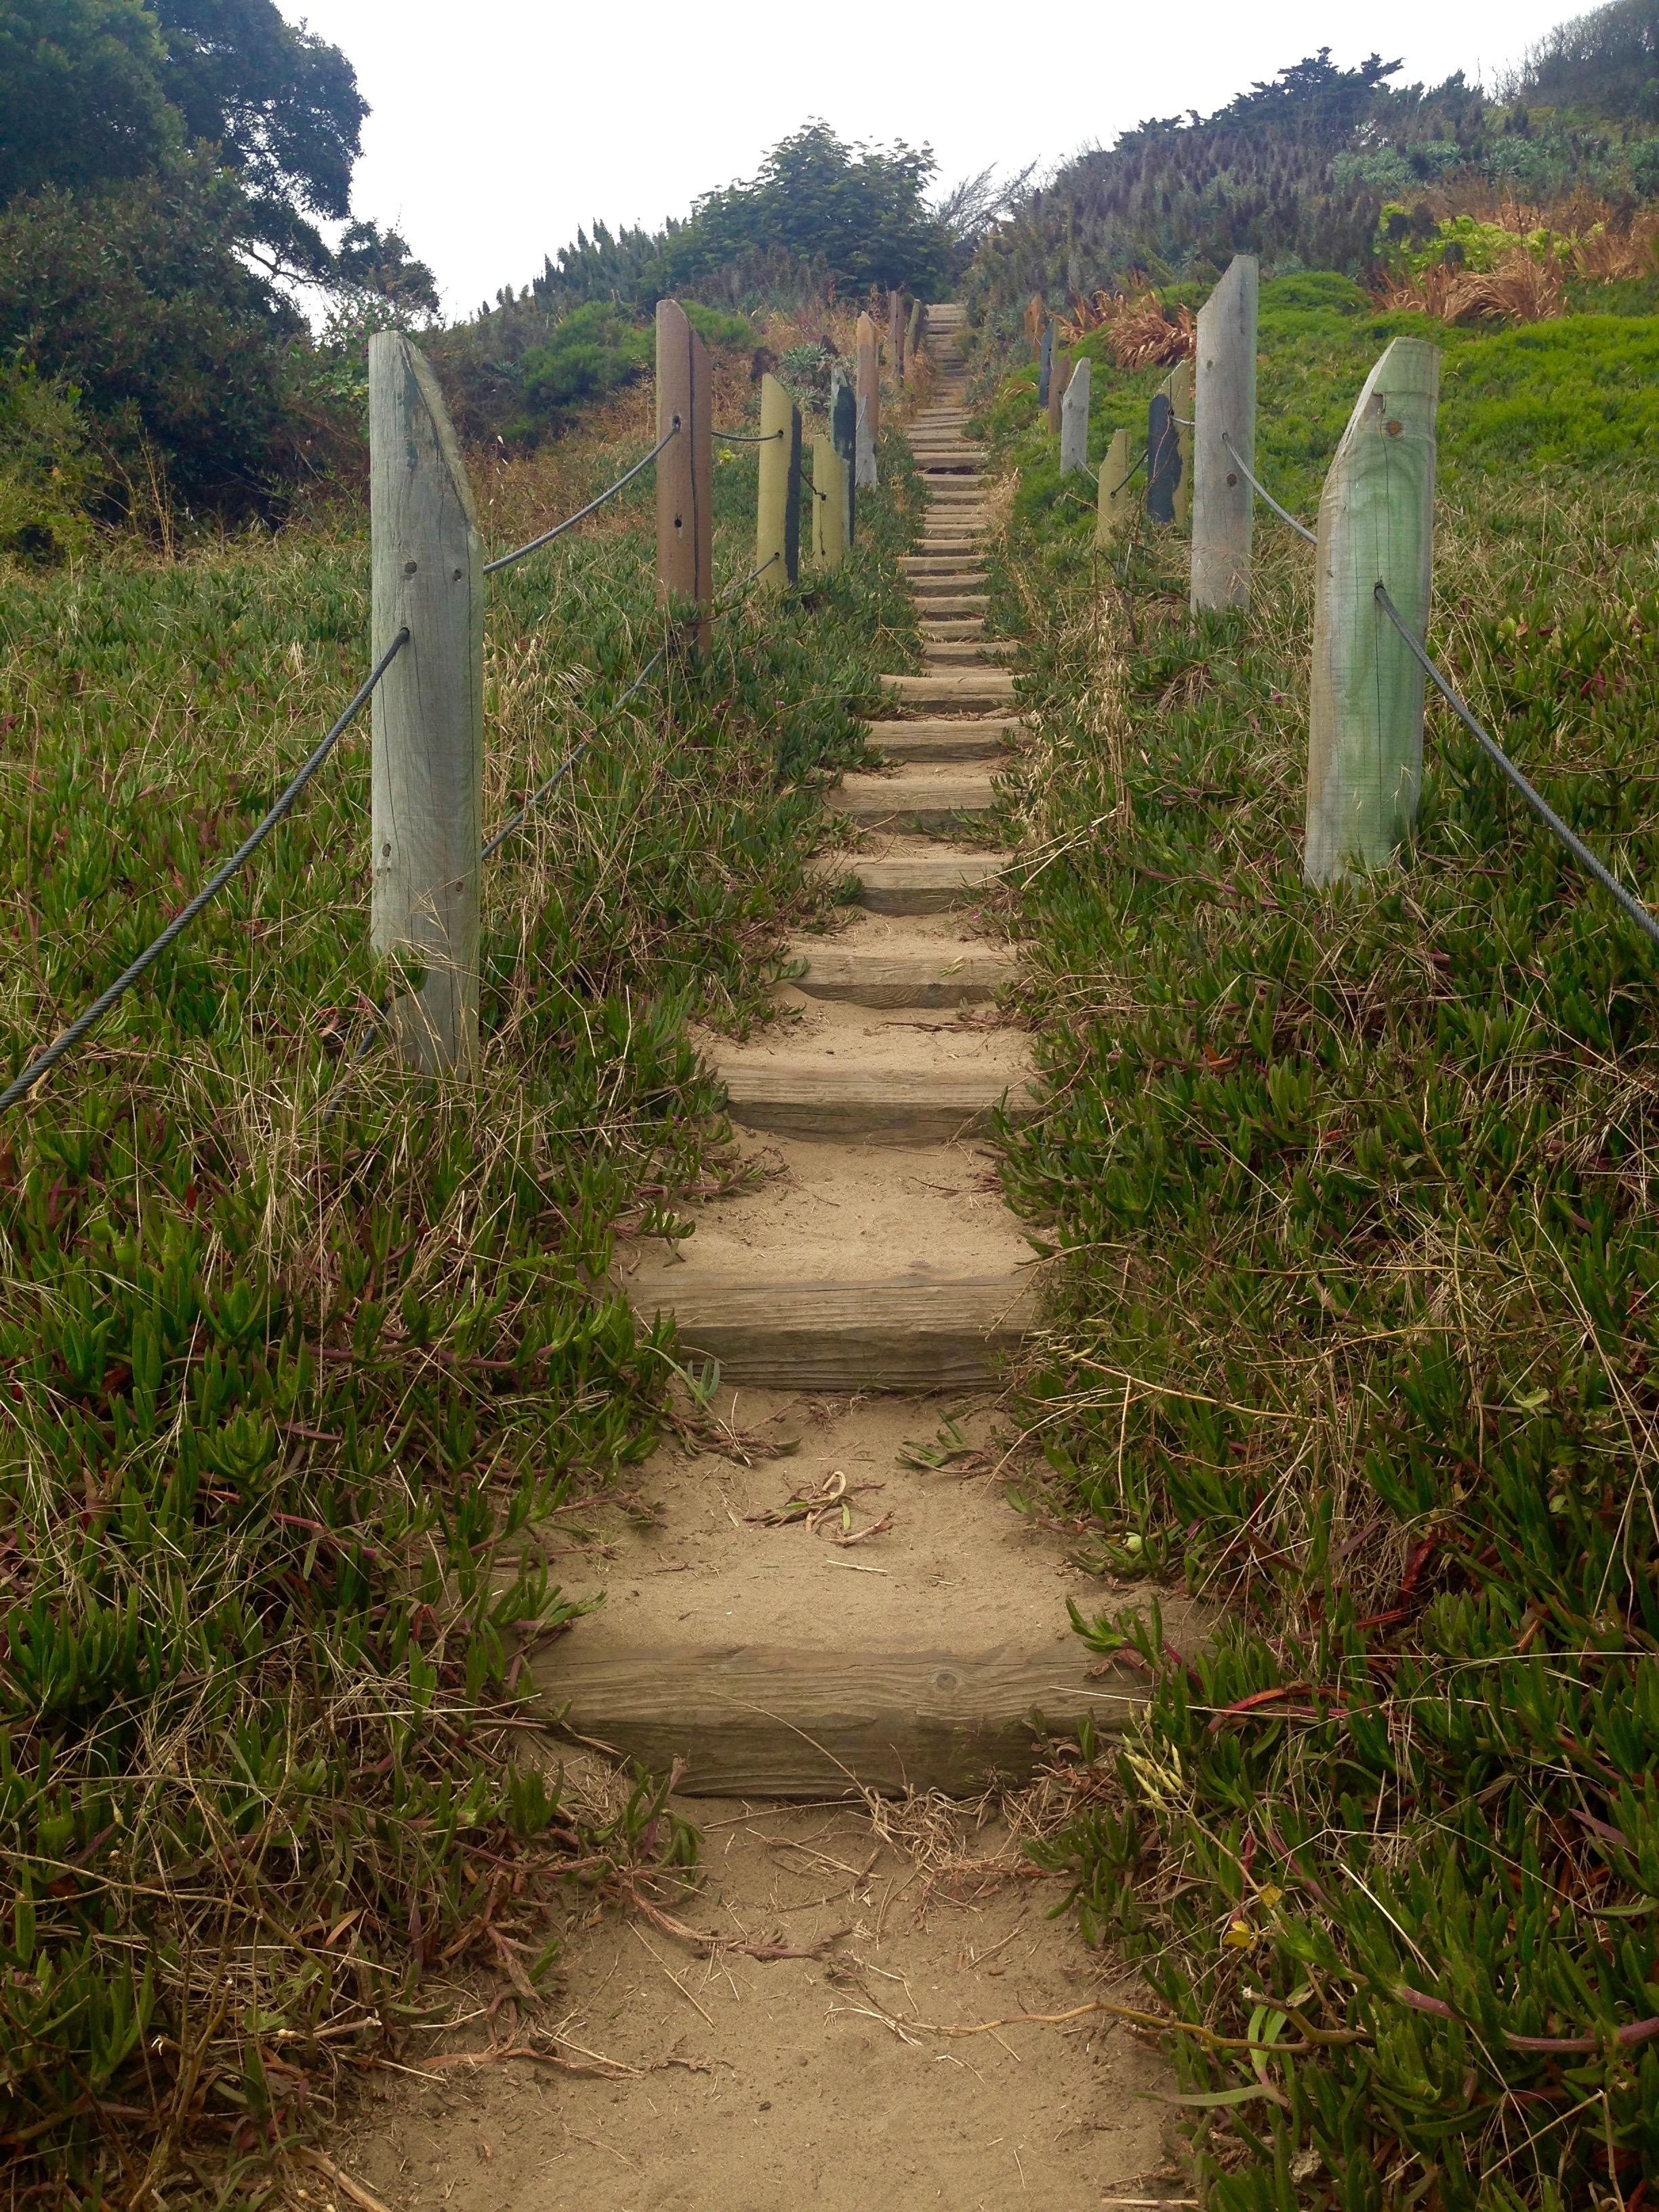 Walk along the Great Highway and take a right at Balboa Street to climb these sandy steps.